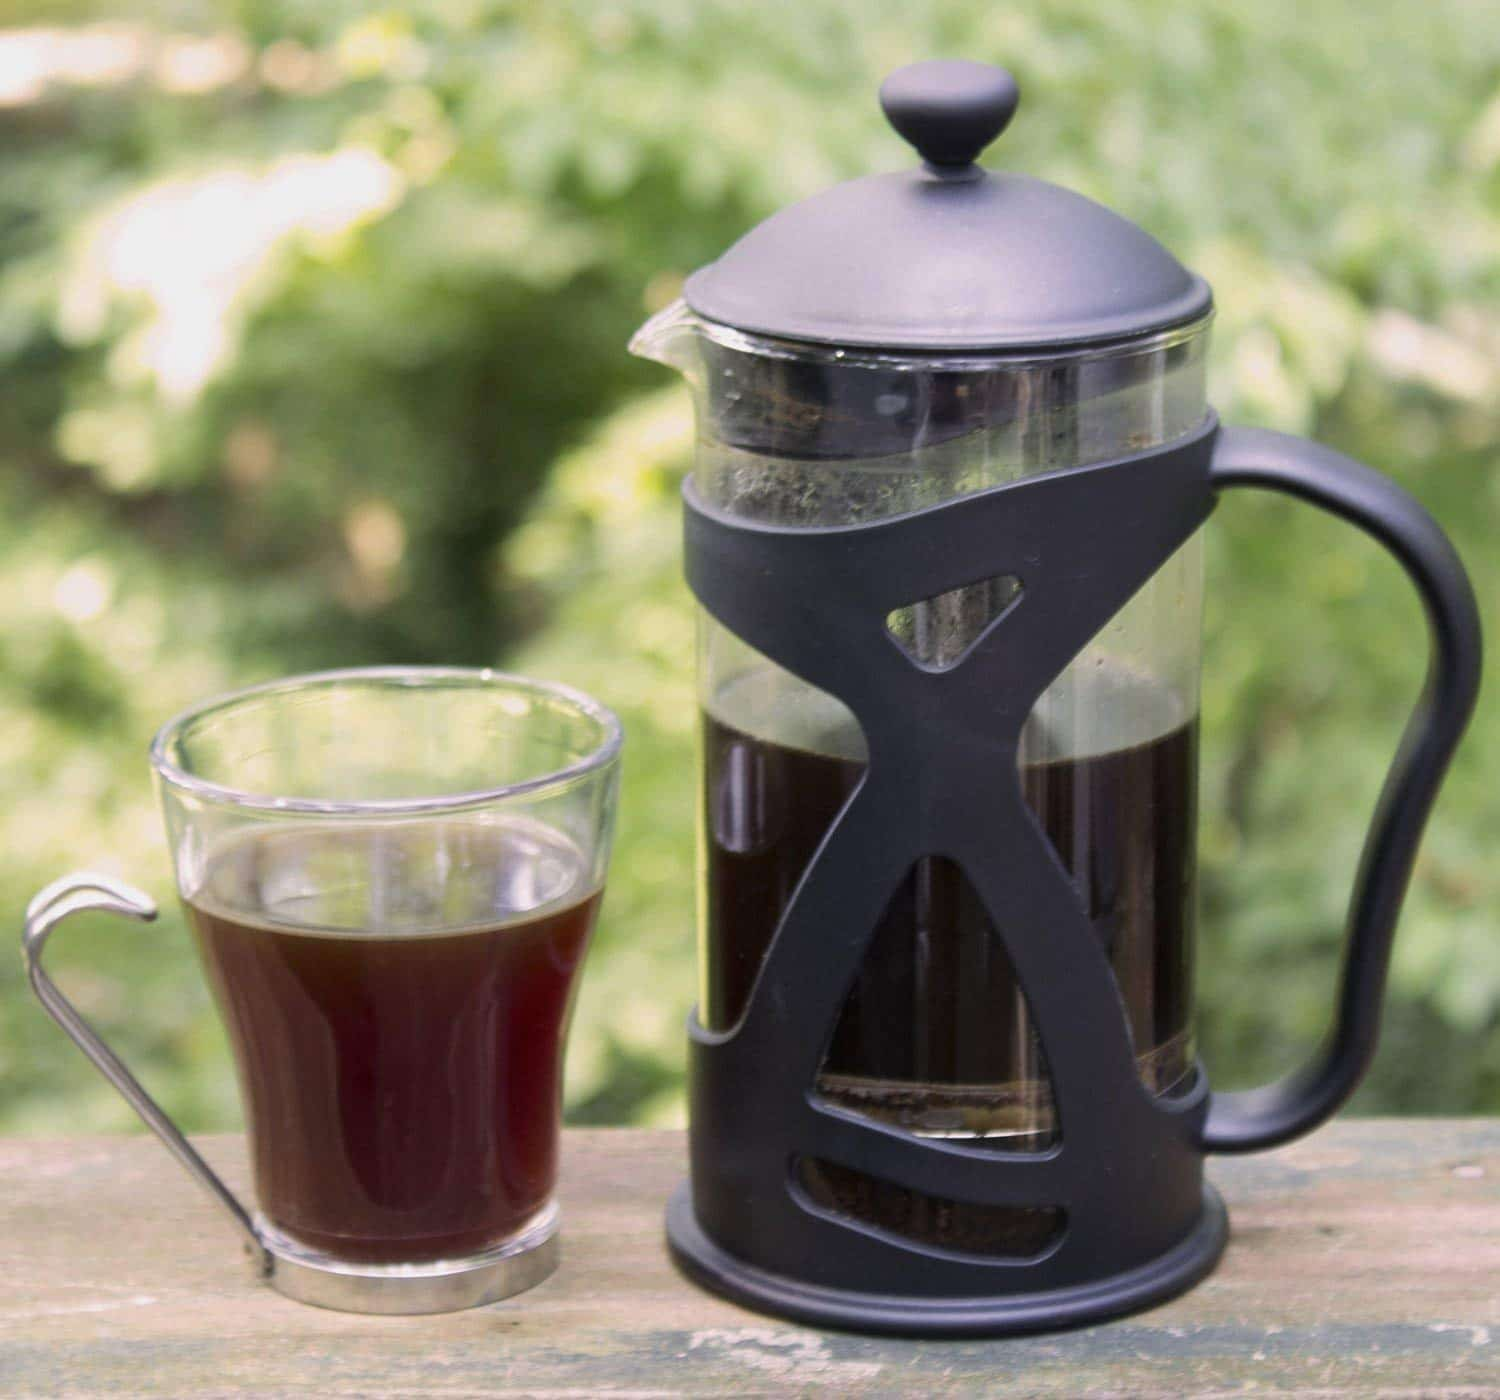 Kona Fresh Press Coffee Maker Info